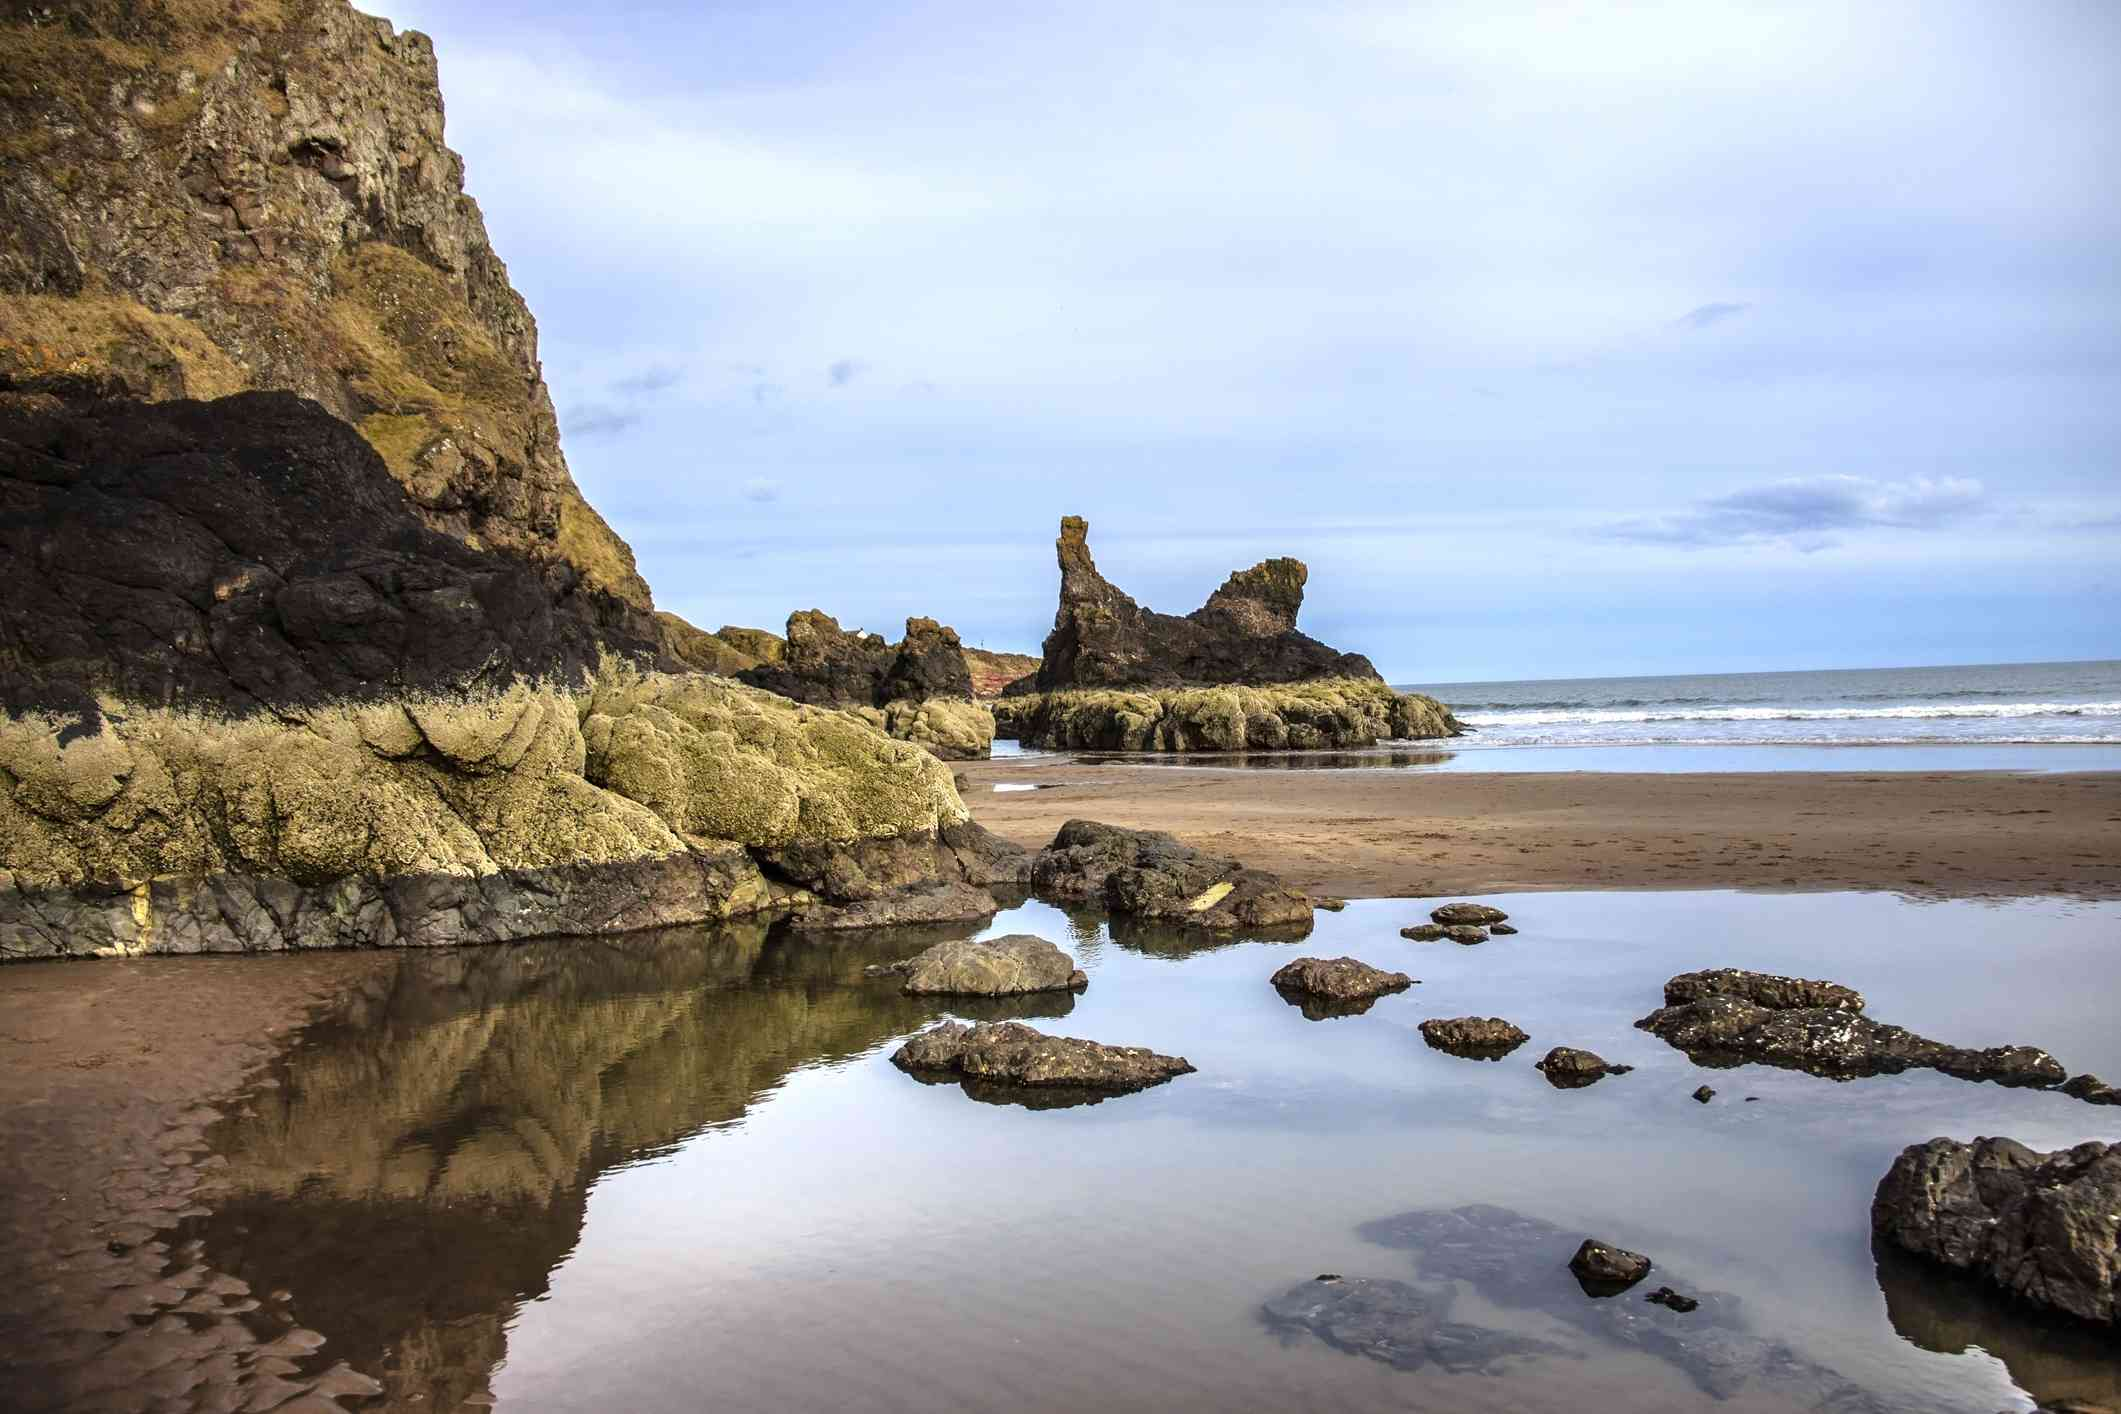 St Cyrus Beach in Scotland with mossy rock formations